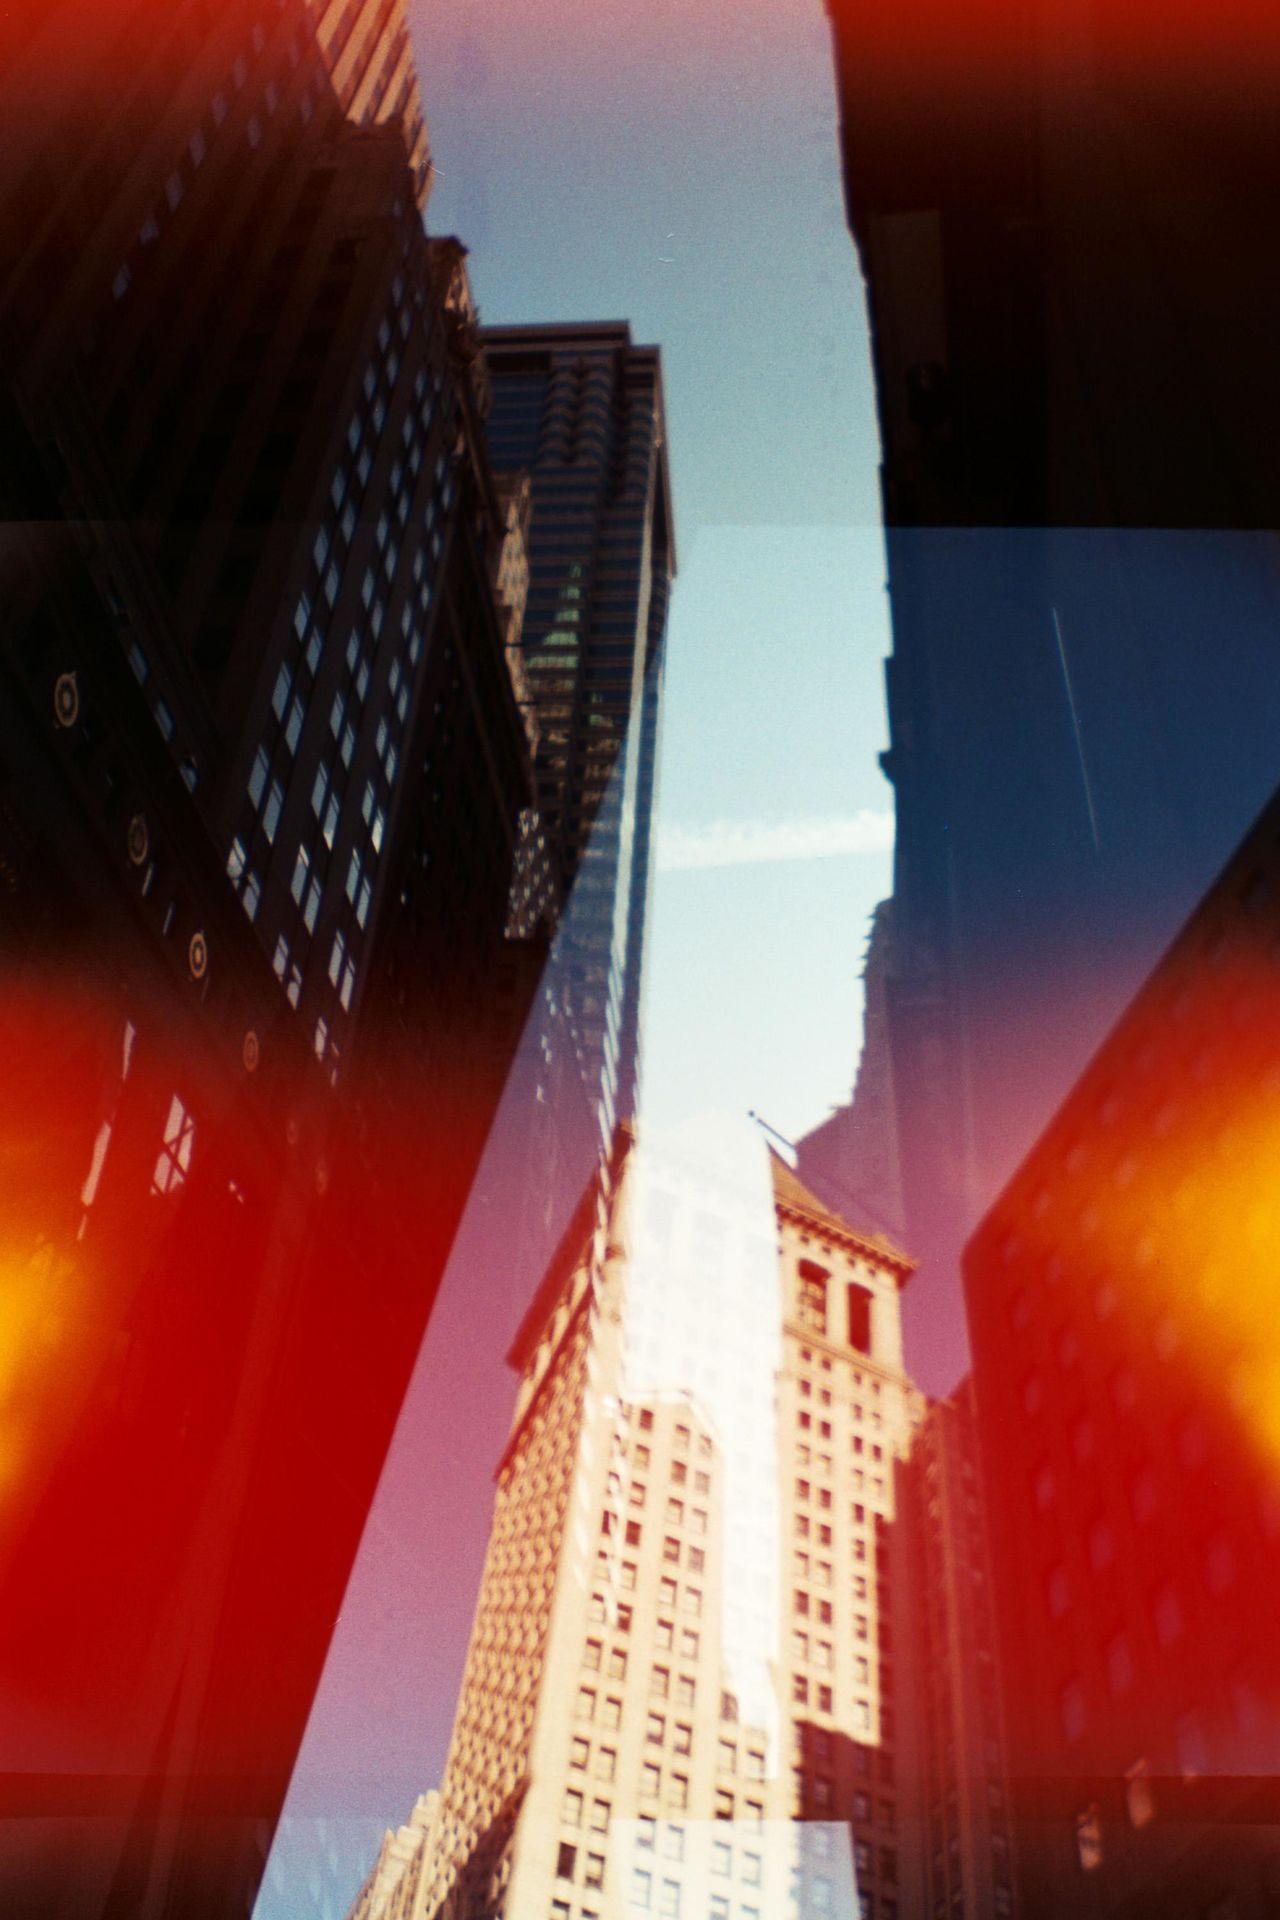 Financial District  Building Exterior Imperfectly Perfect Film Photography Multiple Exposures Unedited Wall Street  No People Shadow & Light Analogue Photography Architecture_collection Light Leak Illusion Of A Fixed Reality